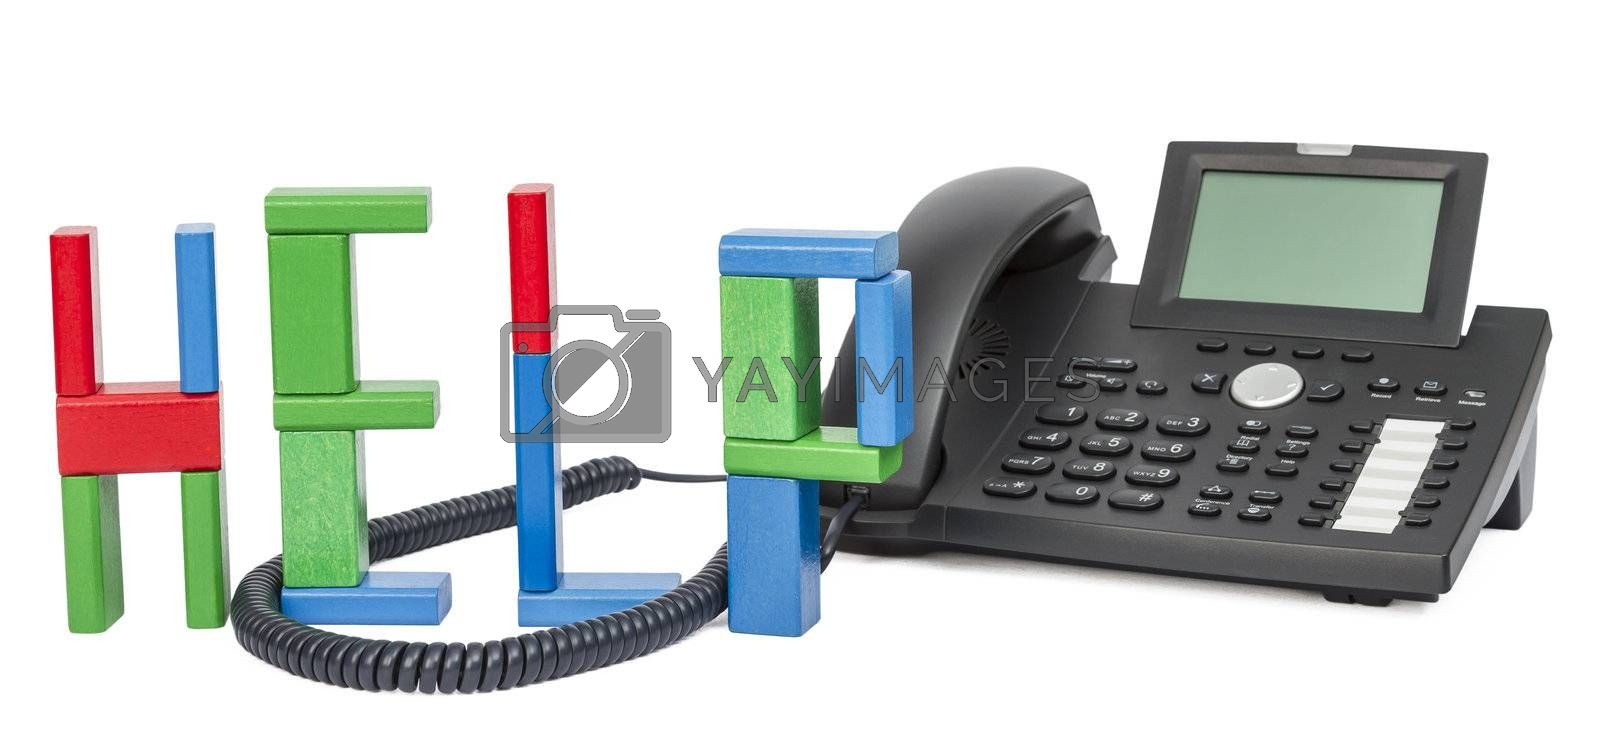 the word help made with toy bricks and a business phone in background.